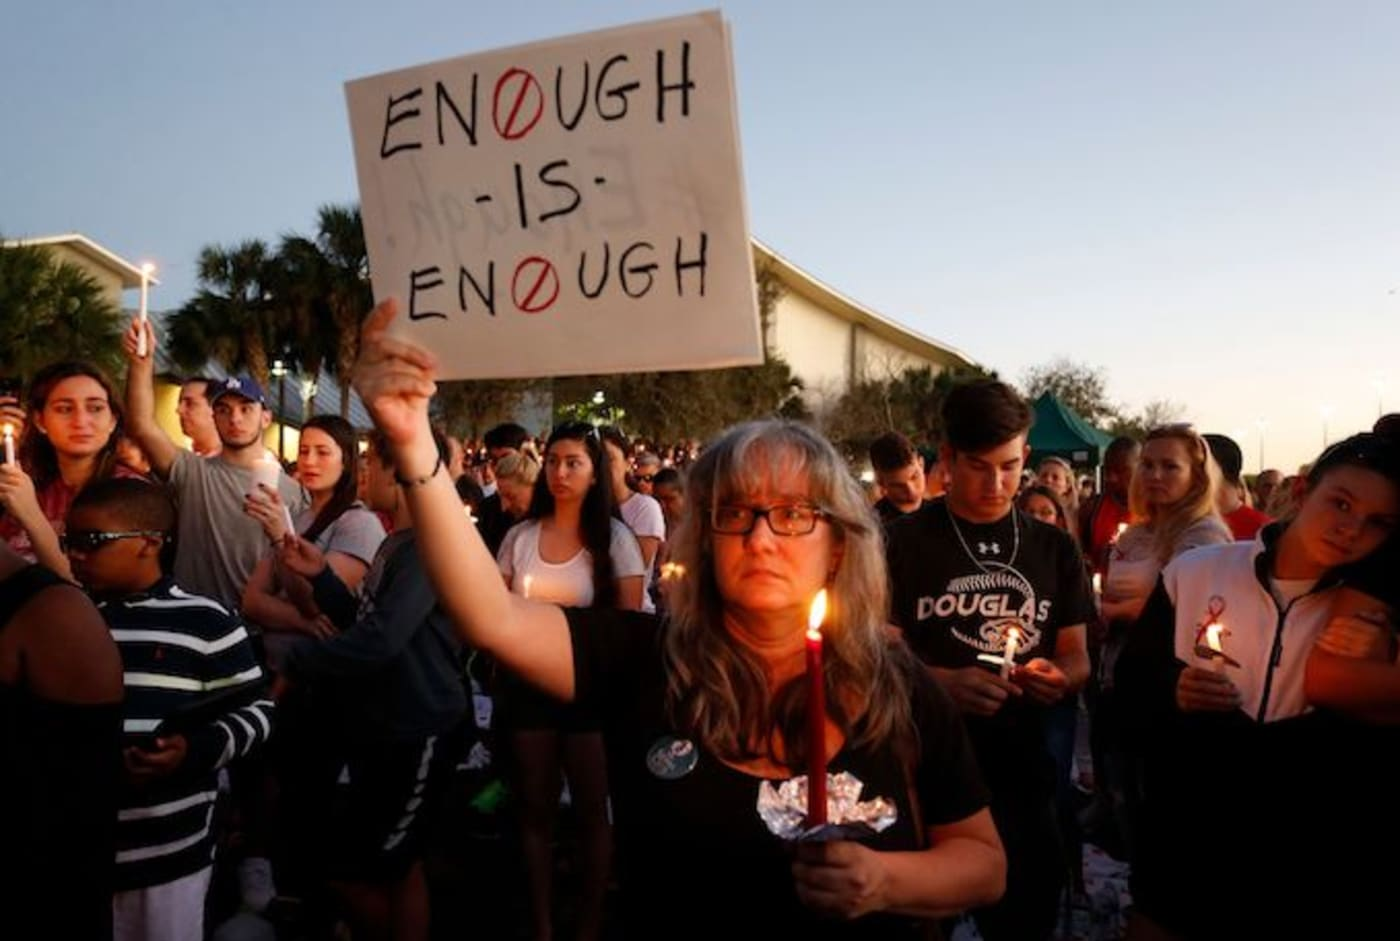 A vigil is held for the victims of the Parkland high school shooting.